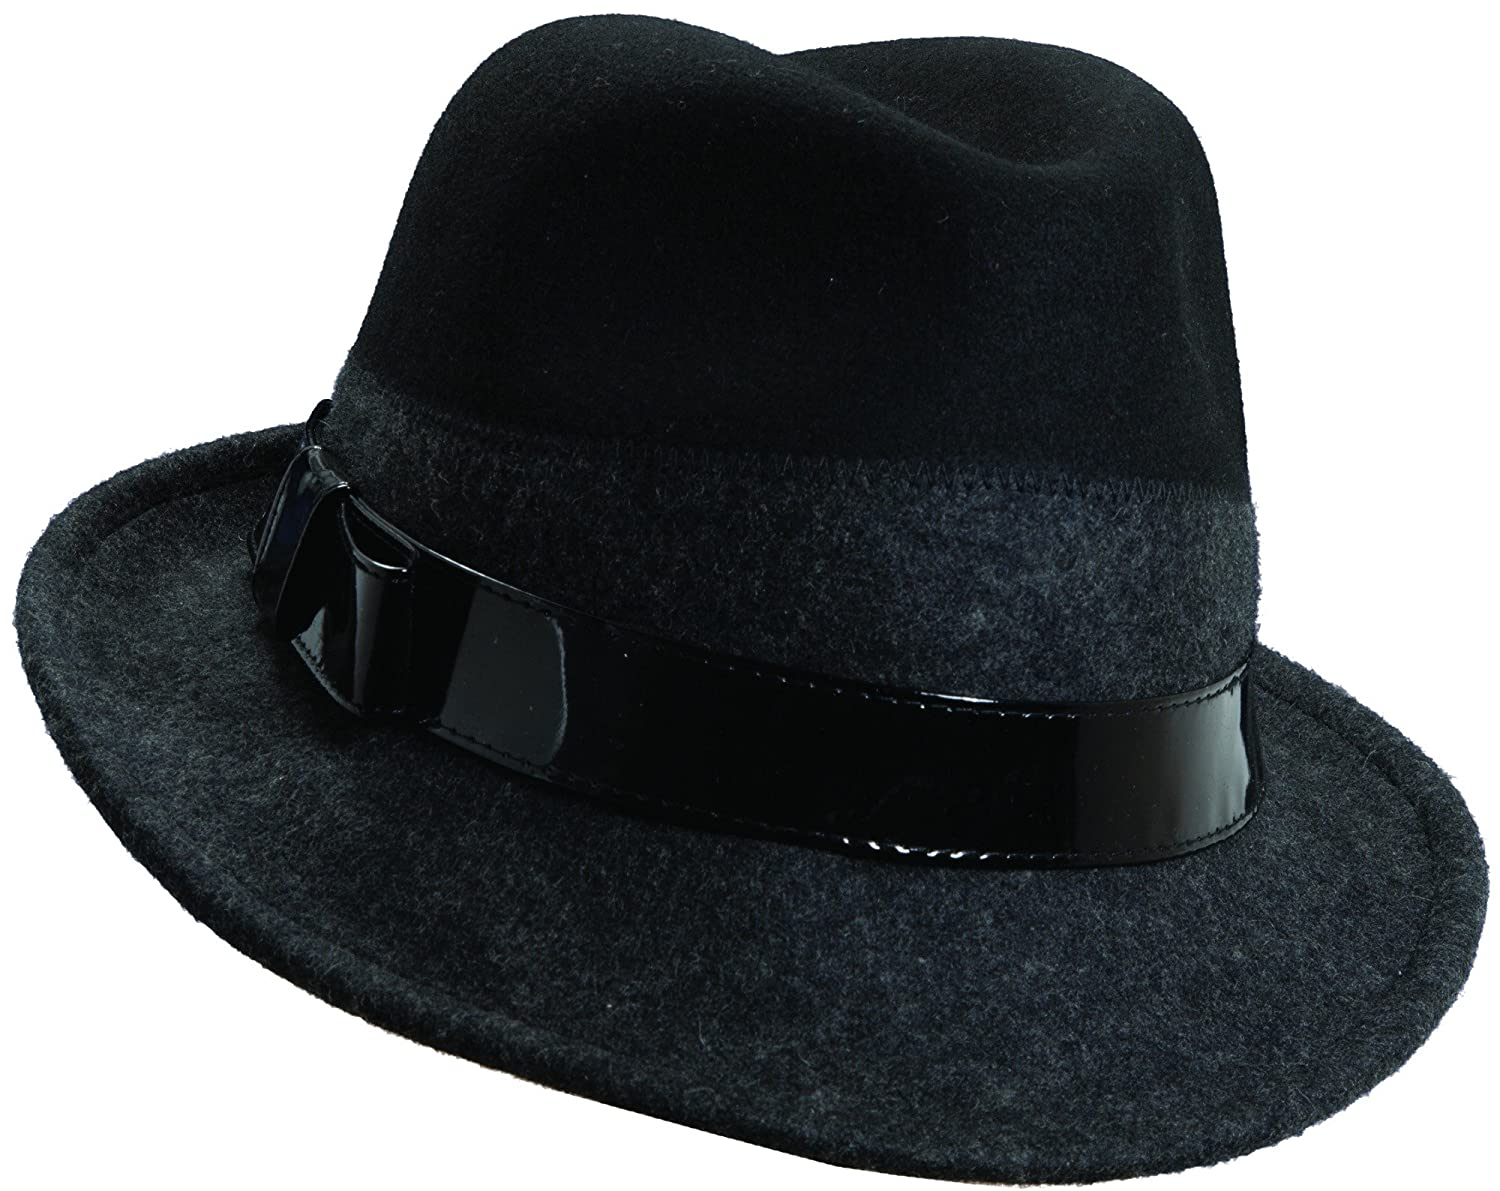 Callanan Suzanne 2 Tones Fedora Wool Hat-Black Charcoal-One Size Fit All at  Amazon Women s Clothing store  305d8a4c01c